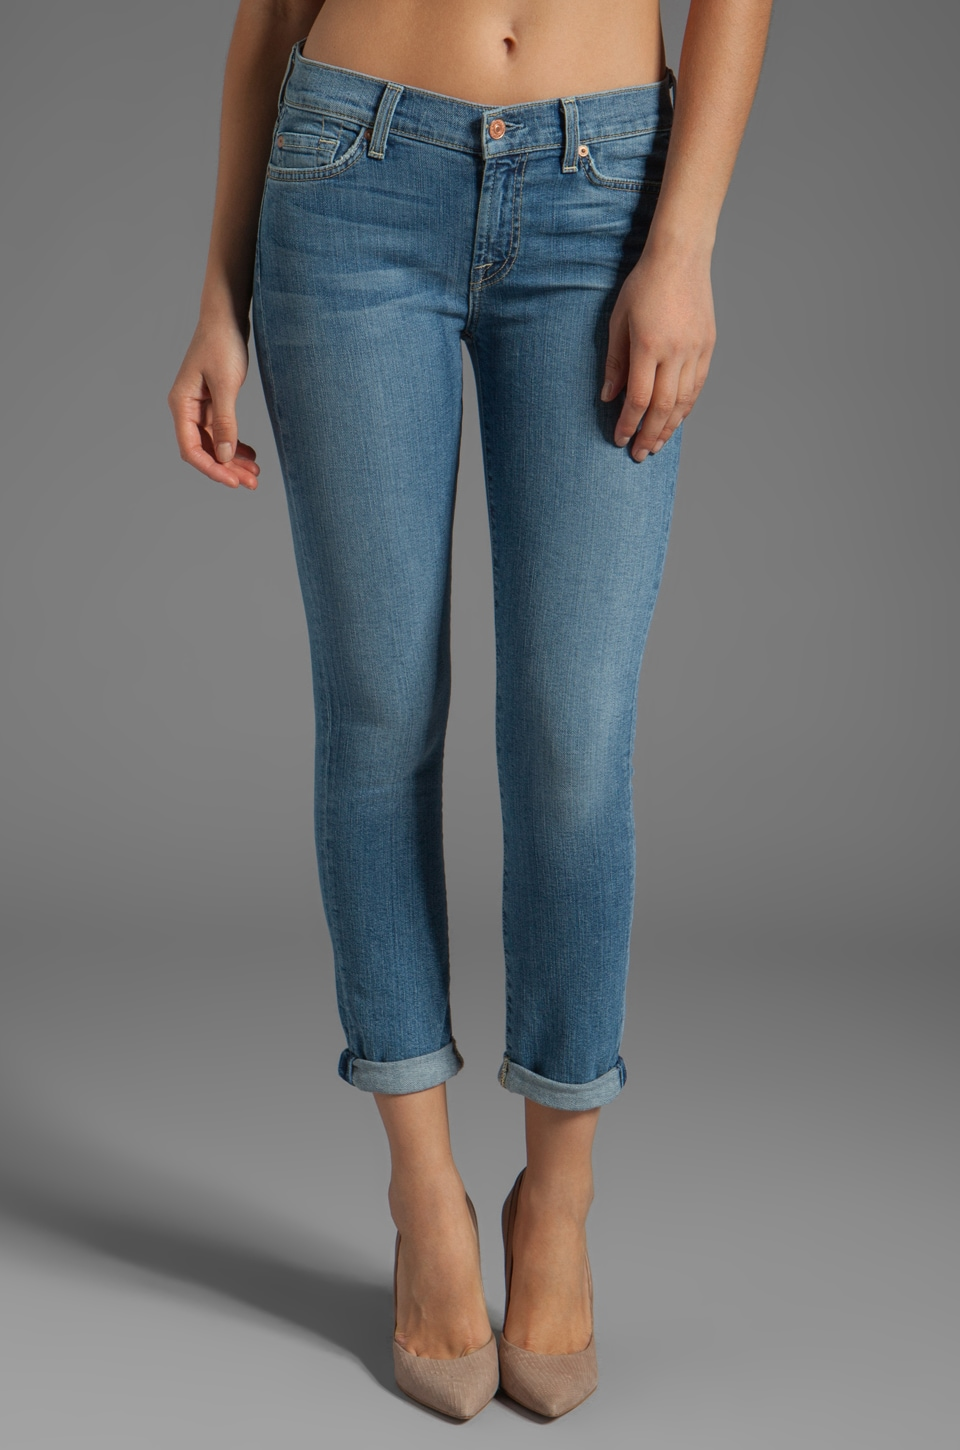 7 For All Mankind The Skinny Crop and Roll in Summer Canyon Mountain